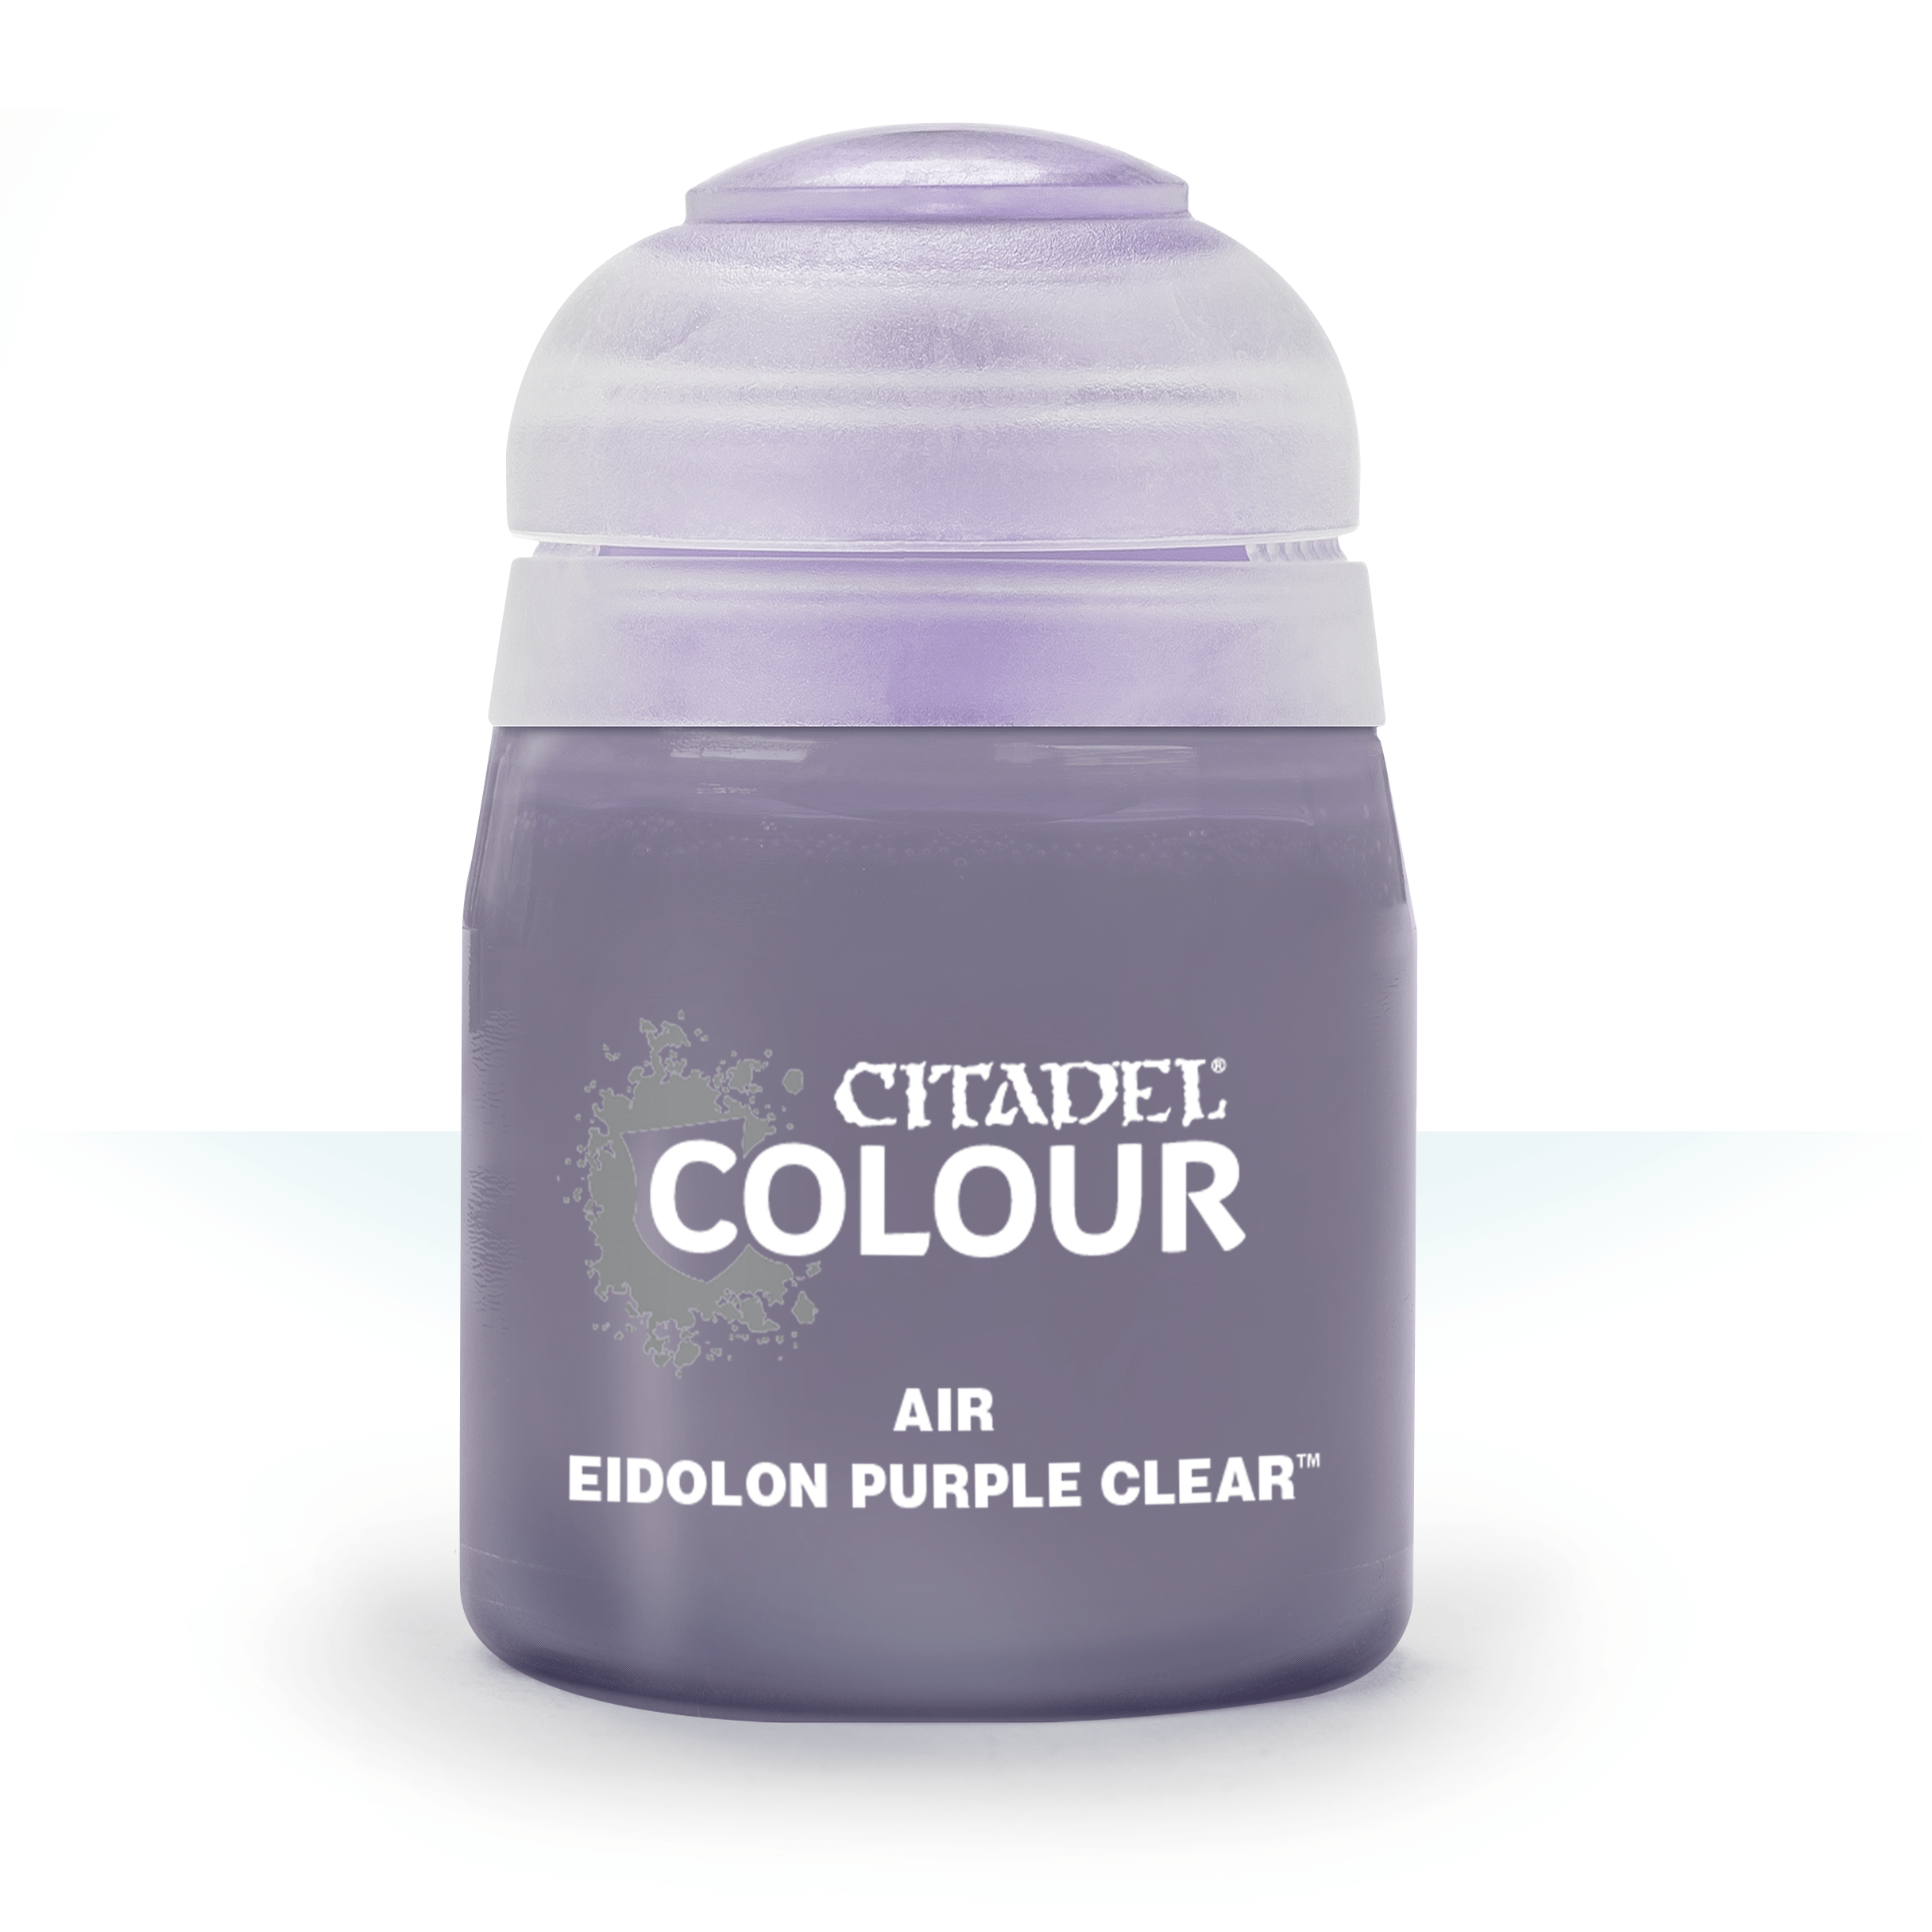 Citadel Airbrush Paints: Eidolon Purple Clear